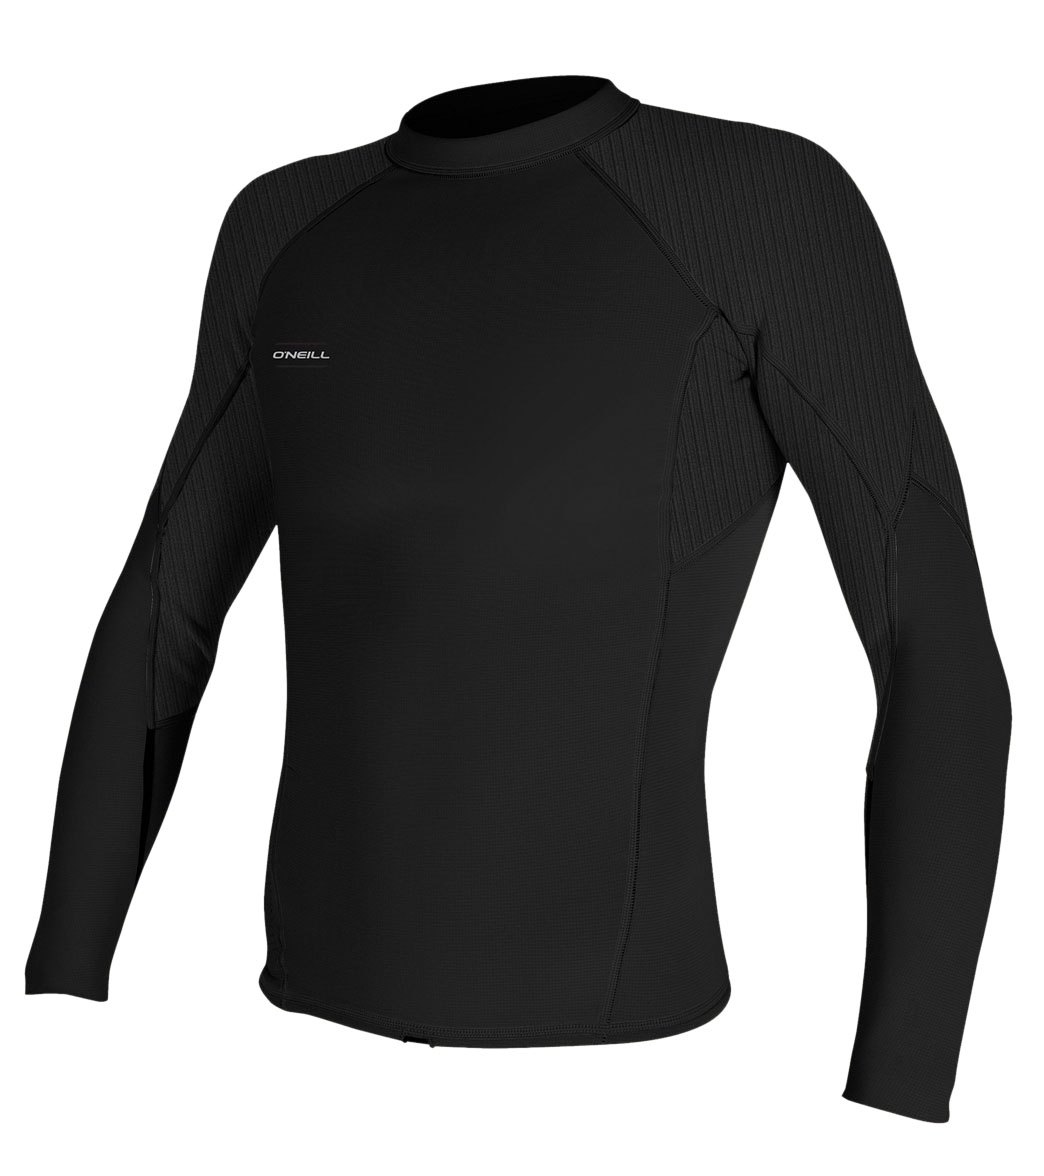 O Neill Men s Hyperfreak 1.5MM Long Sleeve Pullover Wetsuit Top at  SwimOutlet.com - Free Shipping d3a9ca8eb